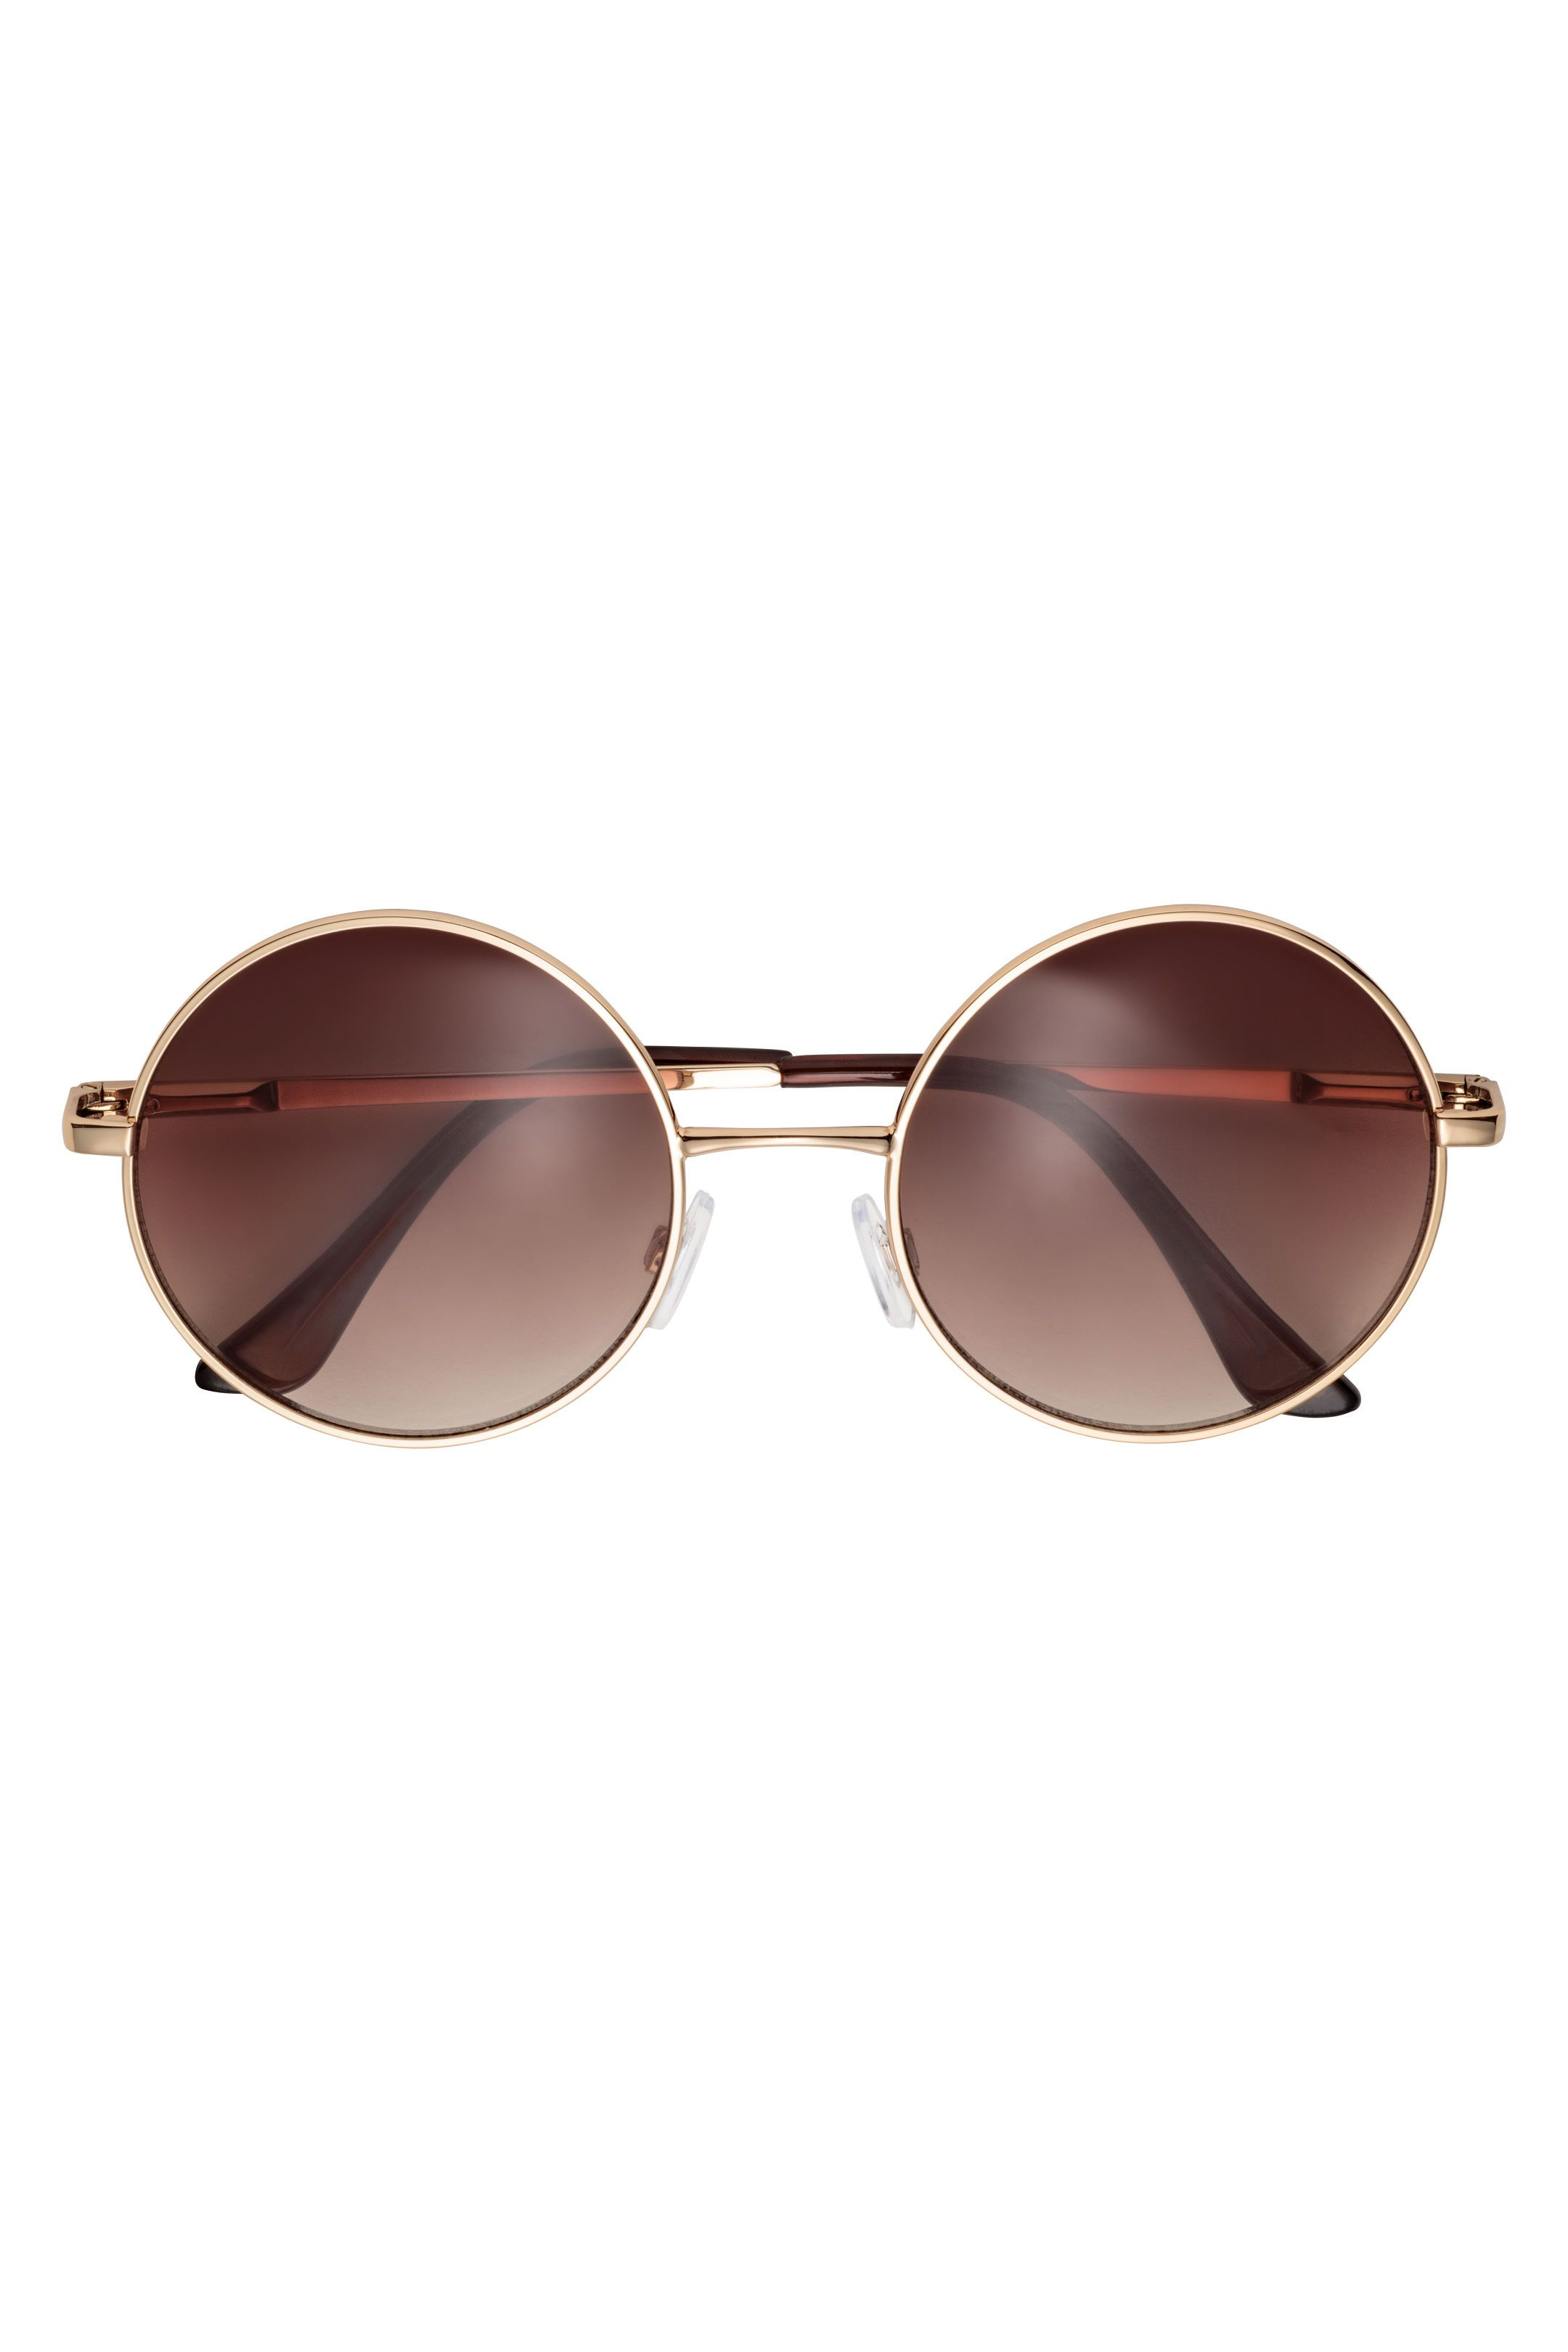 868086f97f8 The Best Sunglasses for Your Face Shape - Summer Sunglasses Guide